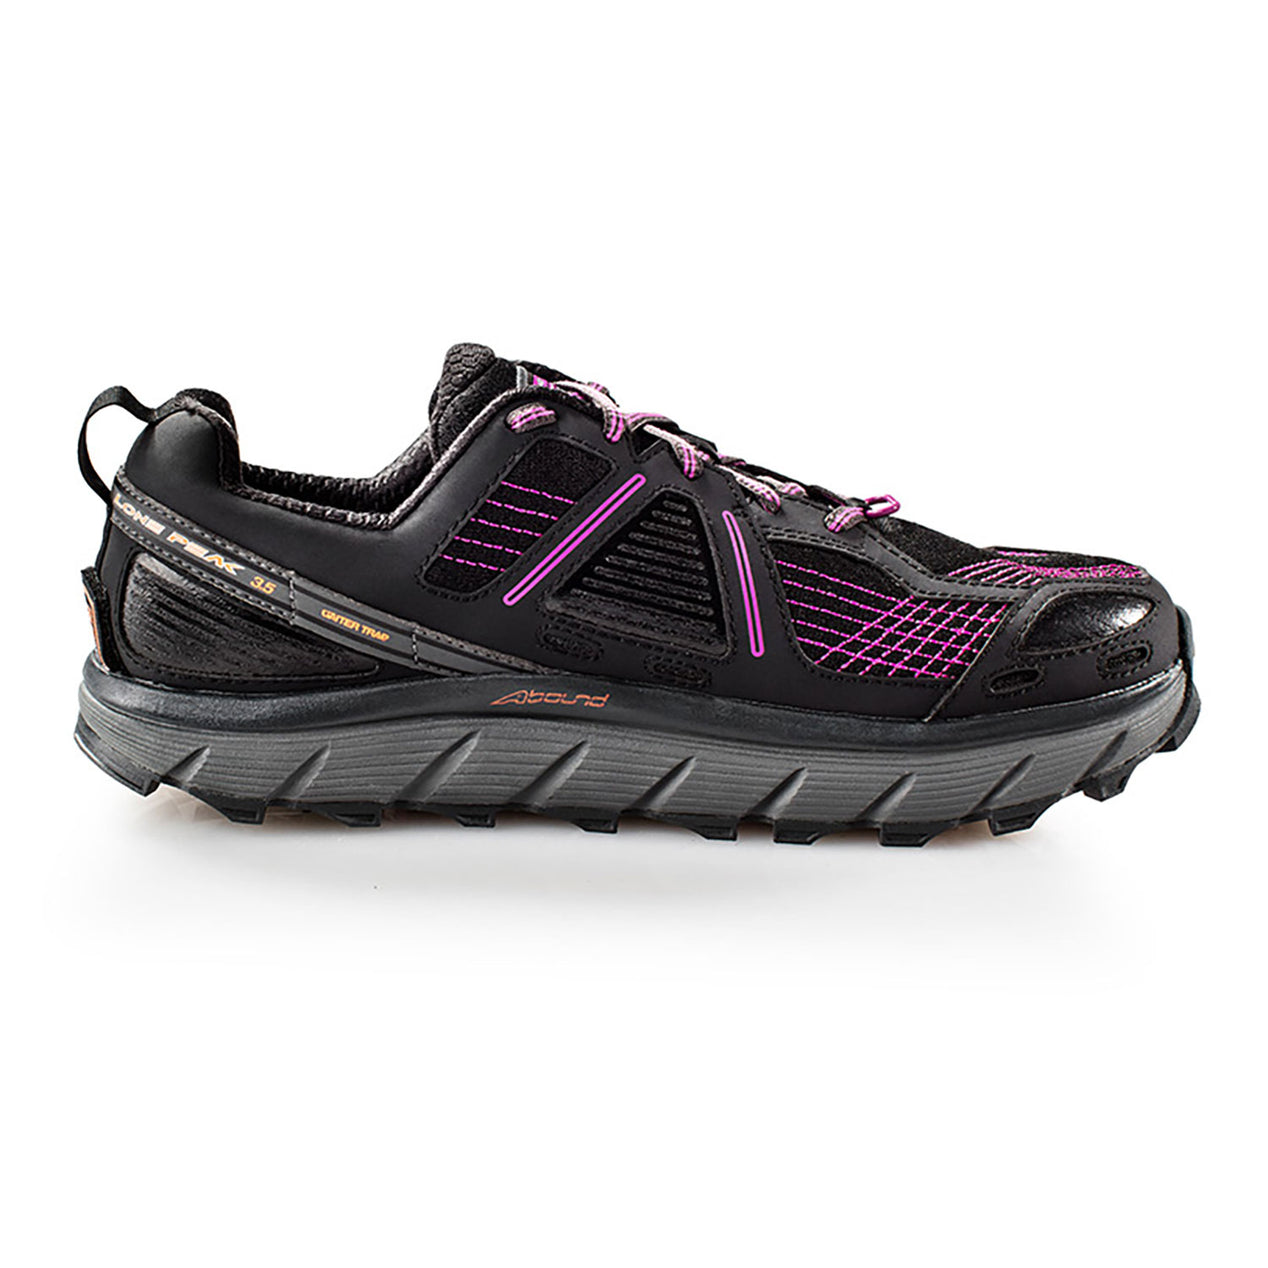 skate shoes exclusive deals buy good Altra Women's Lone Peak 3.5 Trail Running Shoes